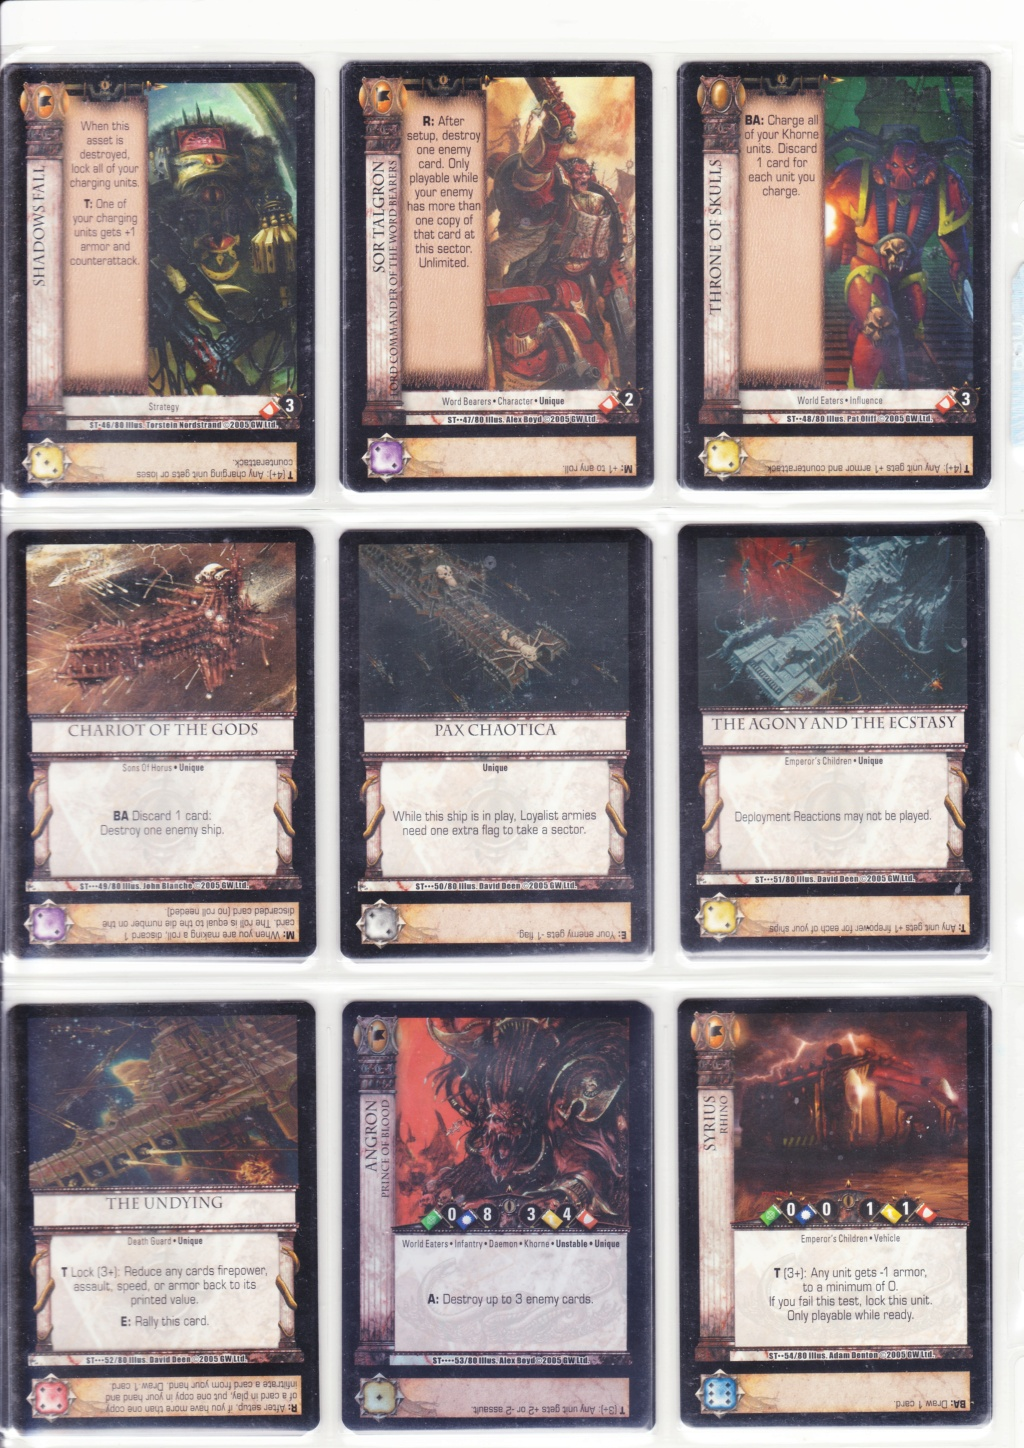 [JdC] Horus Heresy The card game - Page 2 Scn_0013